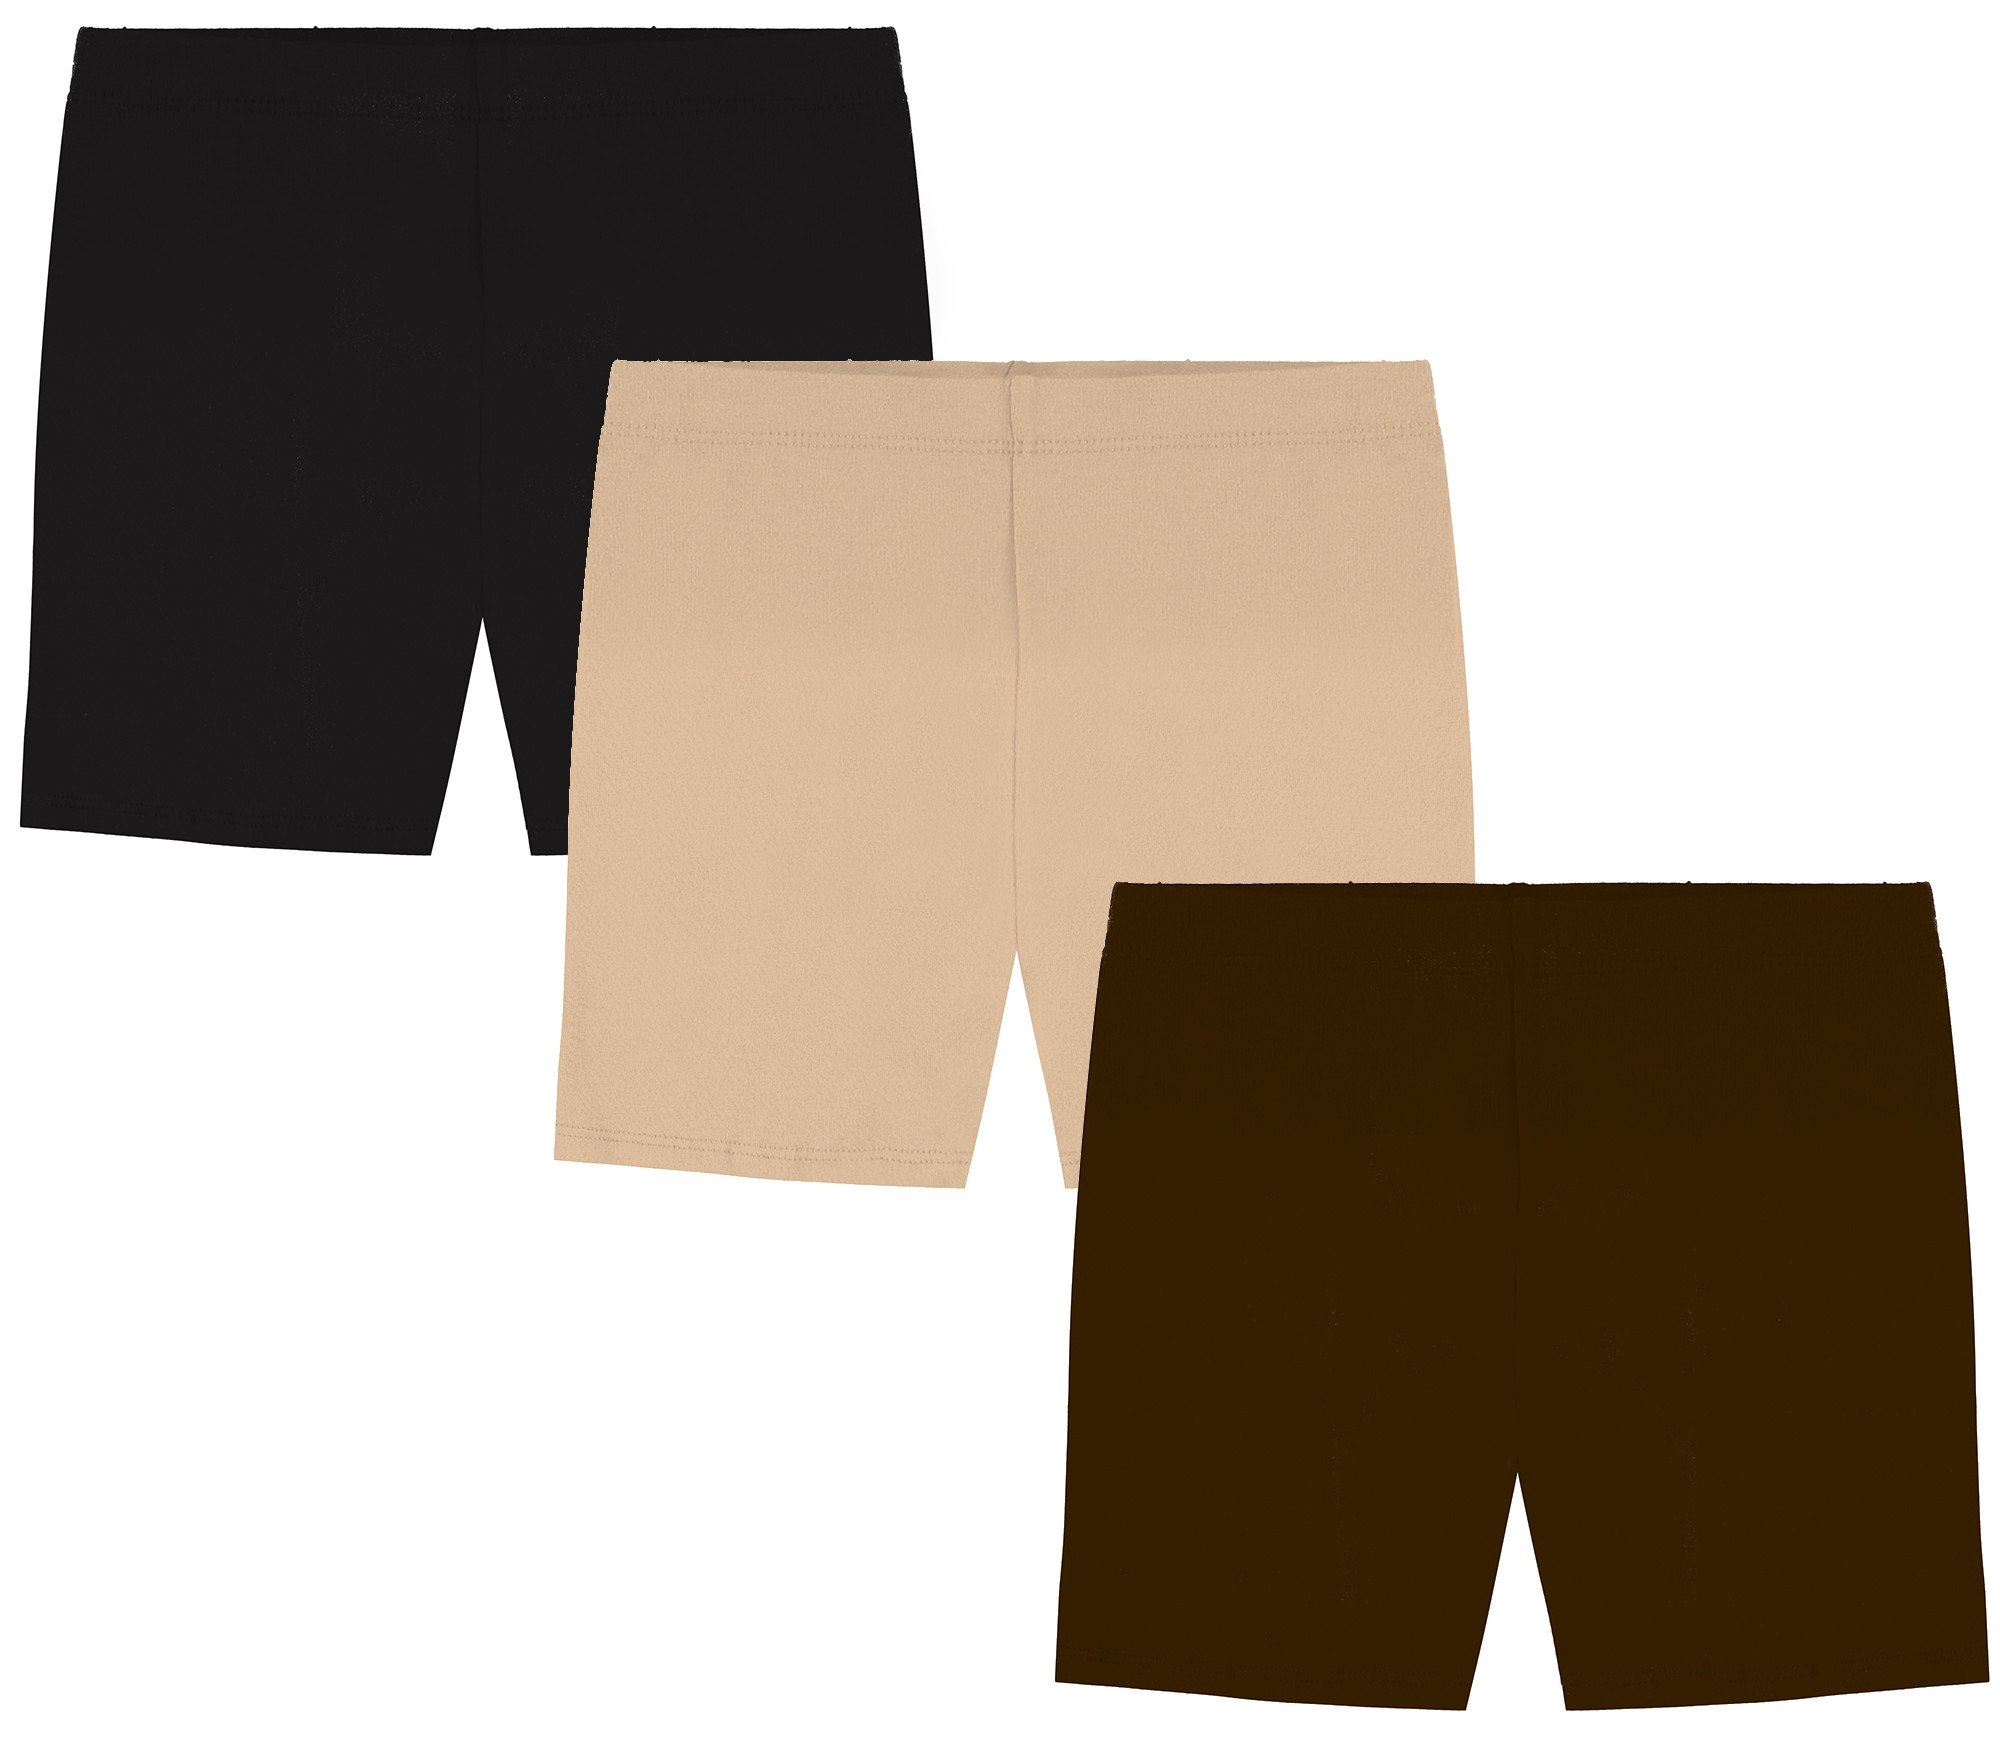 My Way Girls' Value Pack Solid Cotton Bike Shorts - Black, Brown, and Khaki - 14